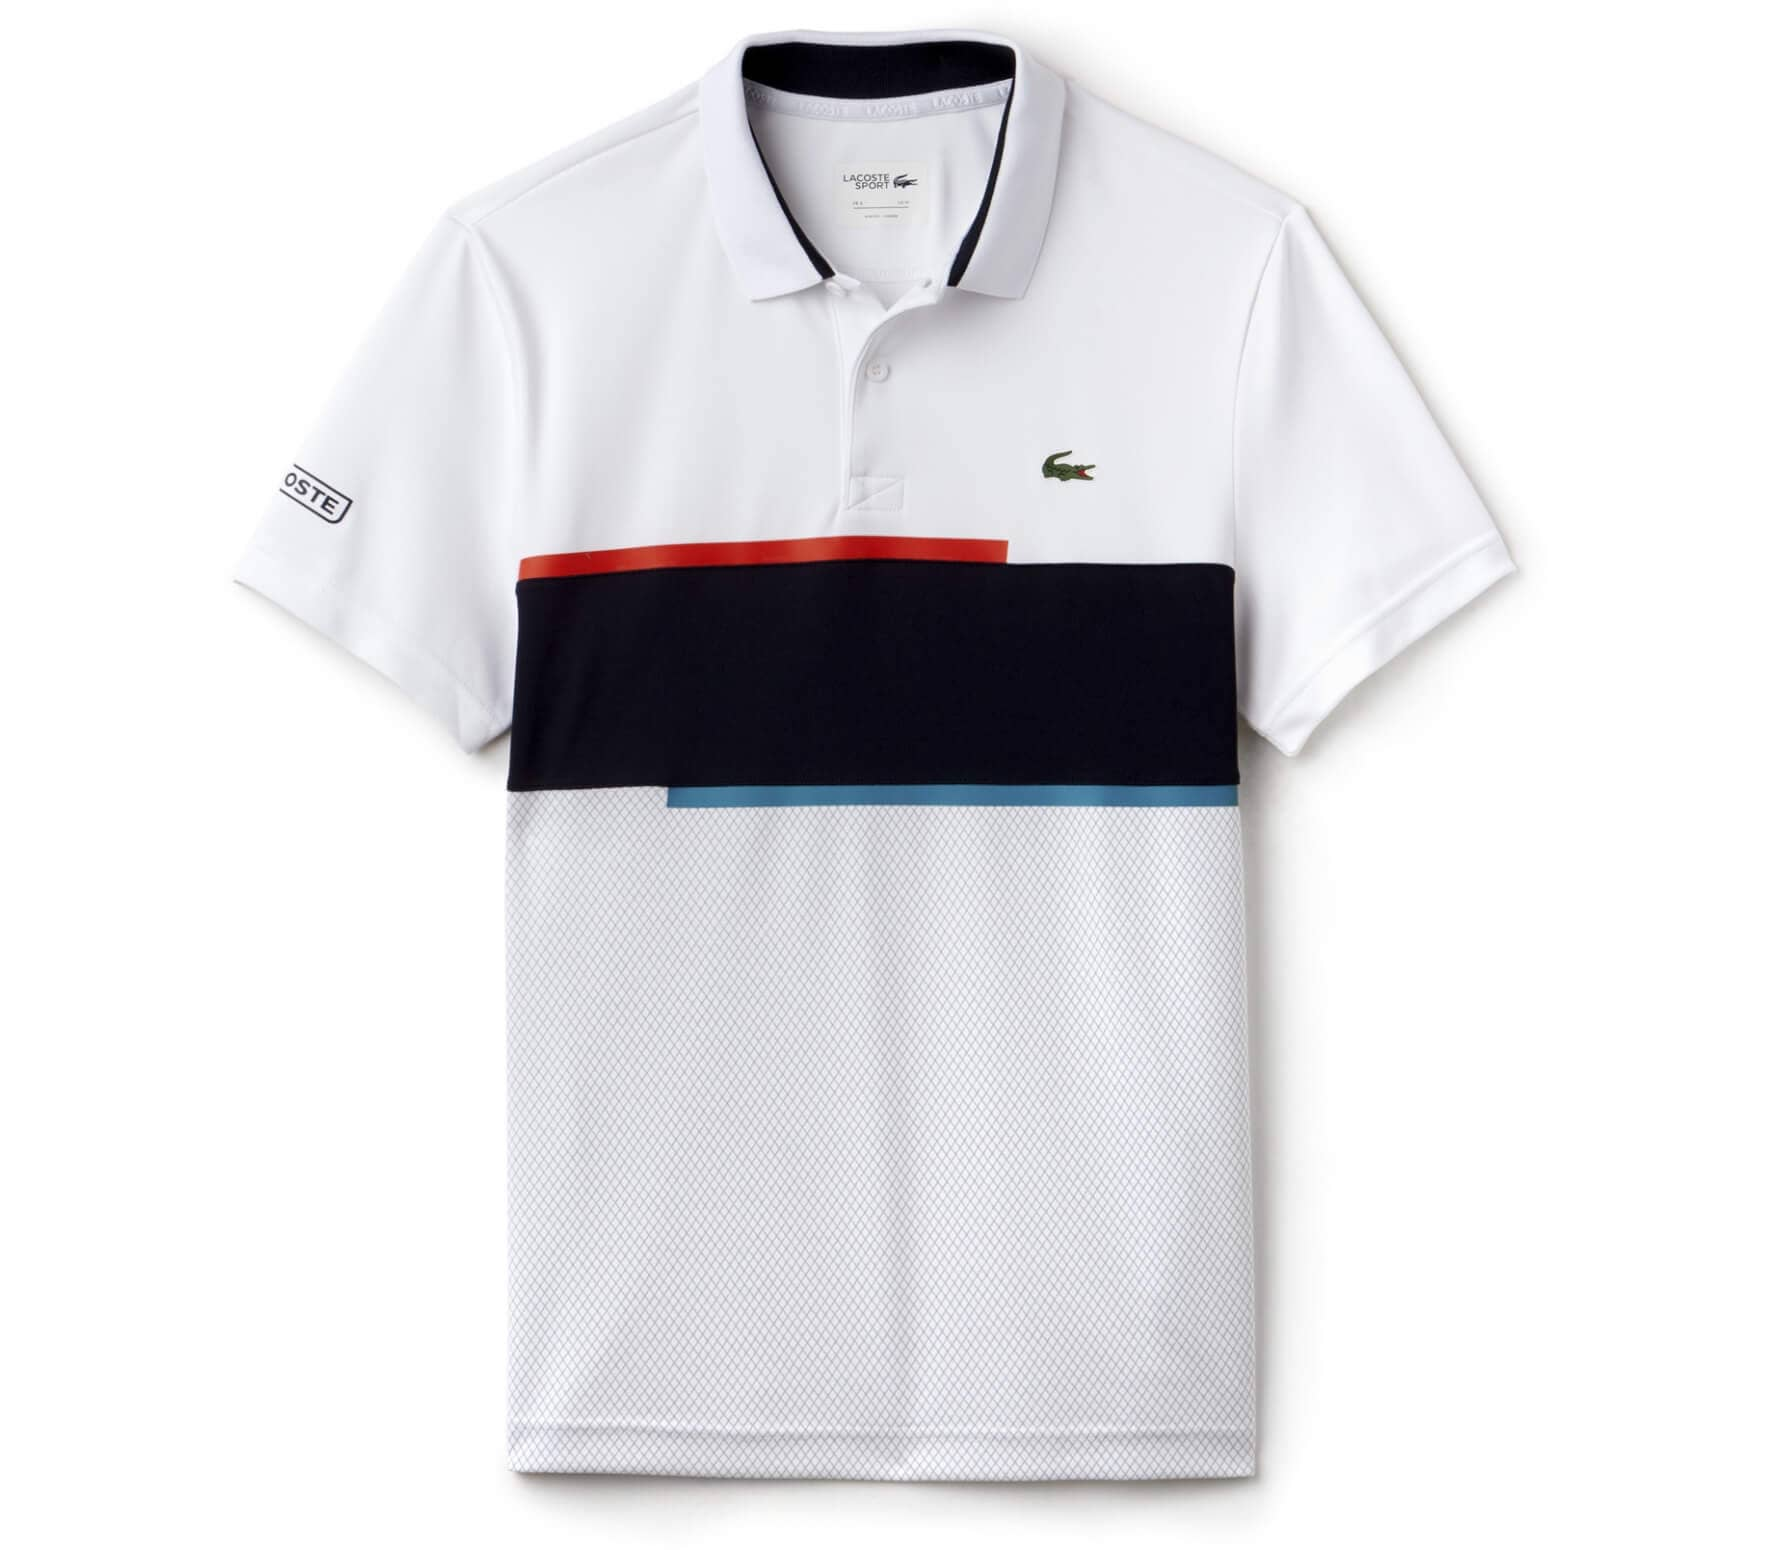 3091ffbe20 Lacoste T Shirts Online Shop - DREAMWORKS